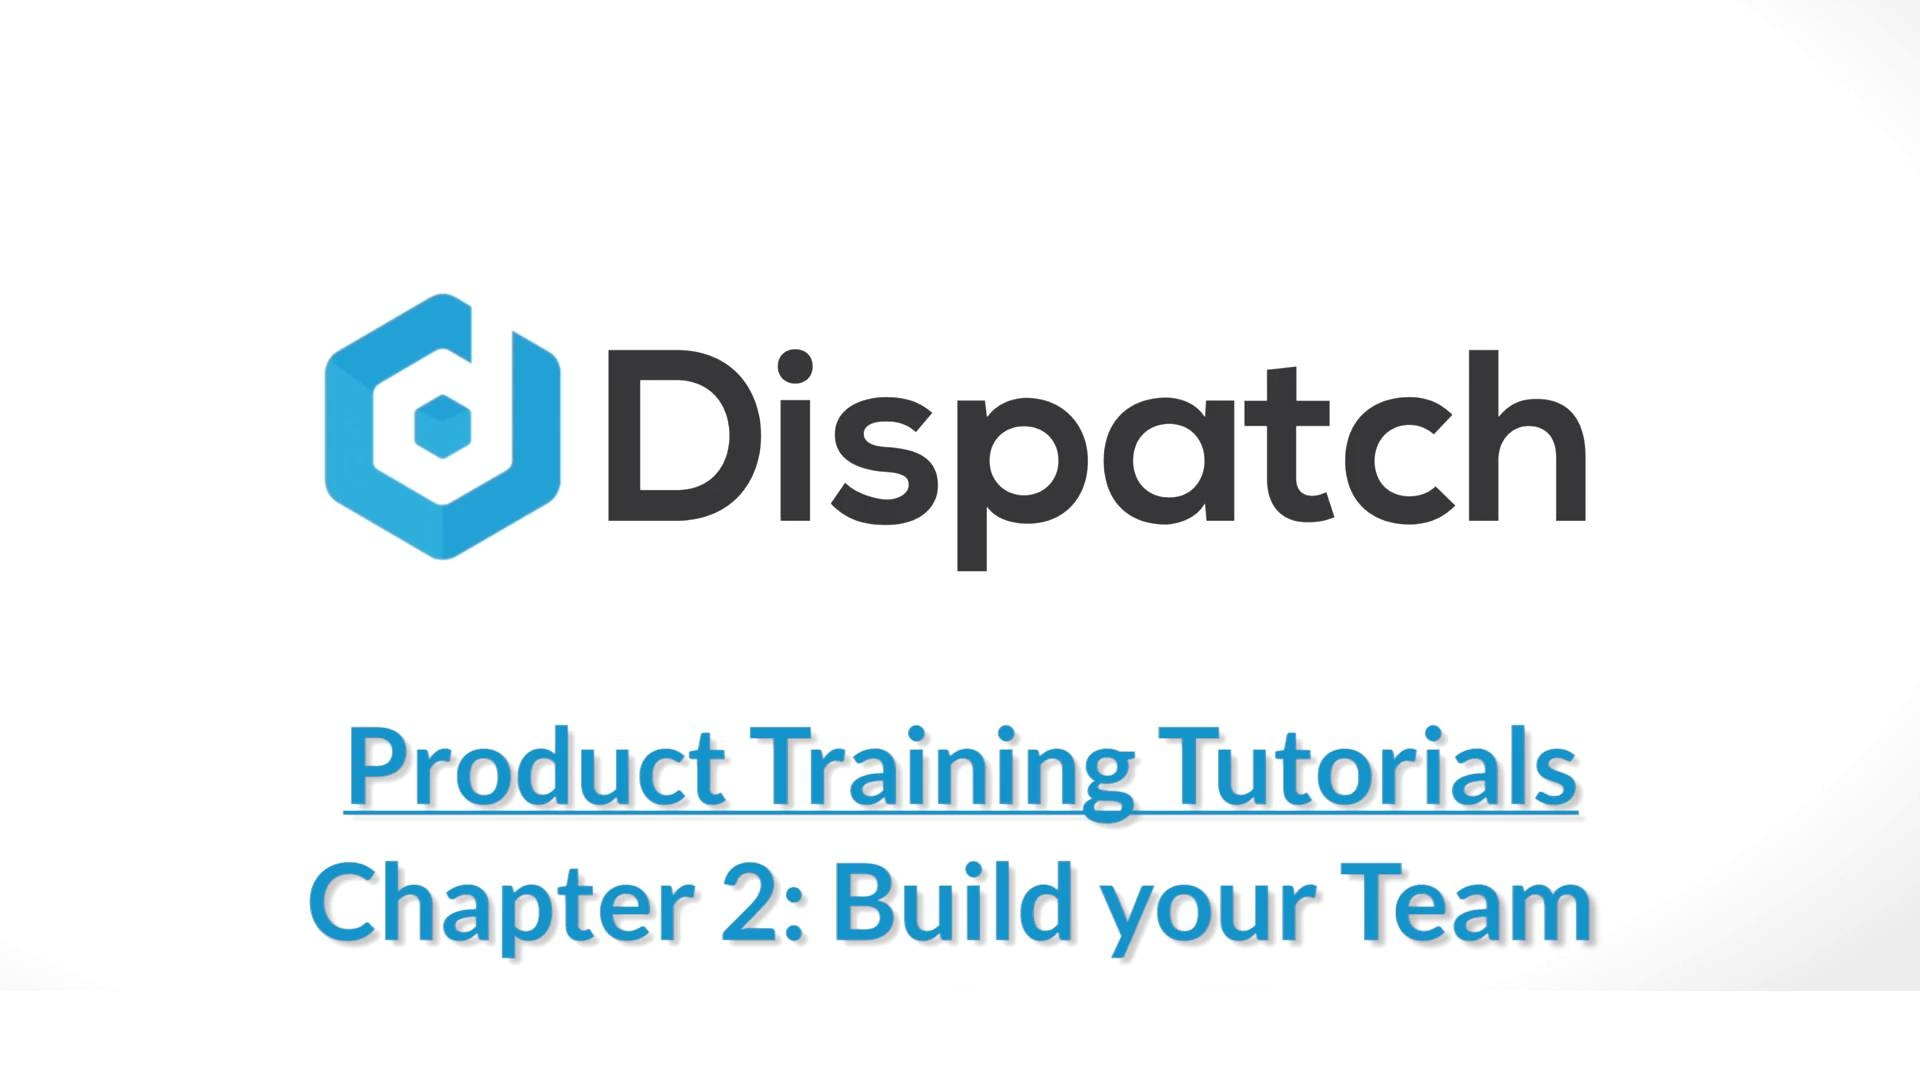 Wistia video thumbnail - Training Chapter 2: Build your Team